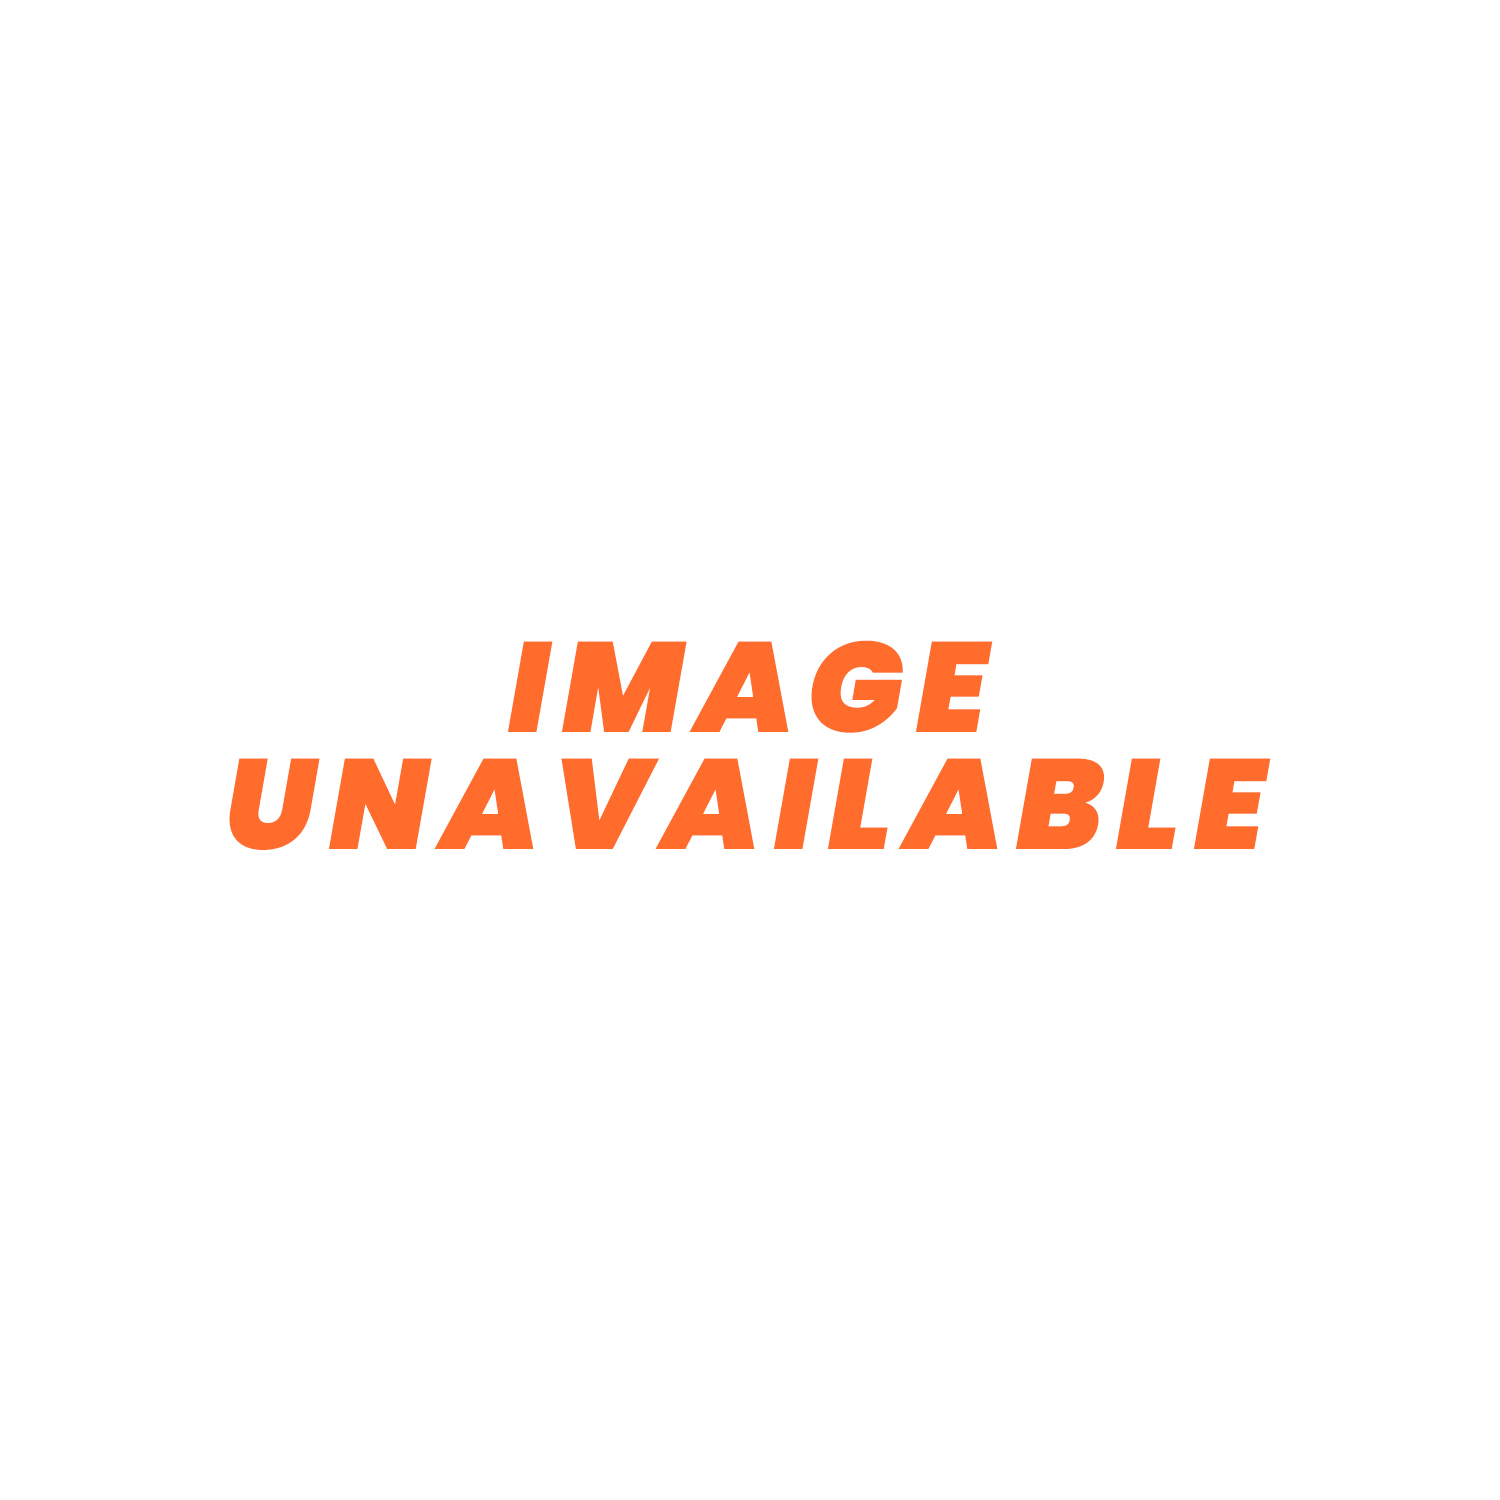 Adhesive Gold Reflective Heat Barrier Sheet 18 x 18""